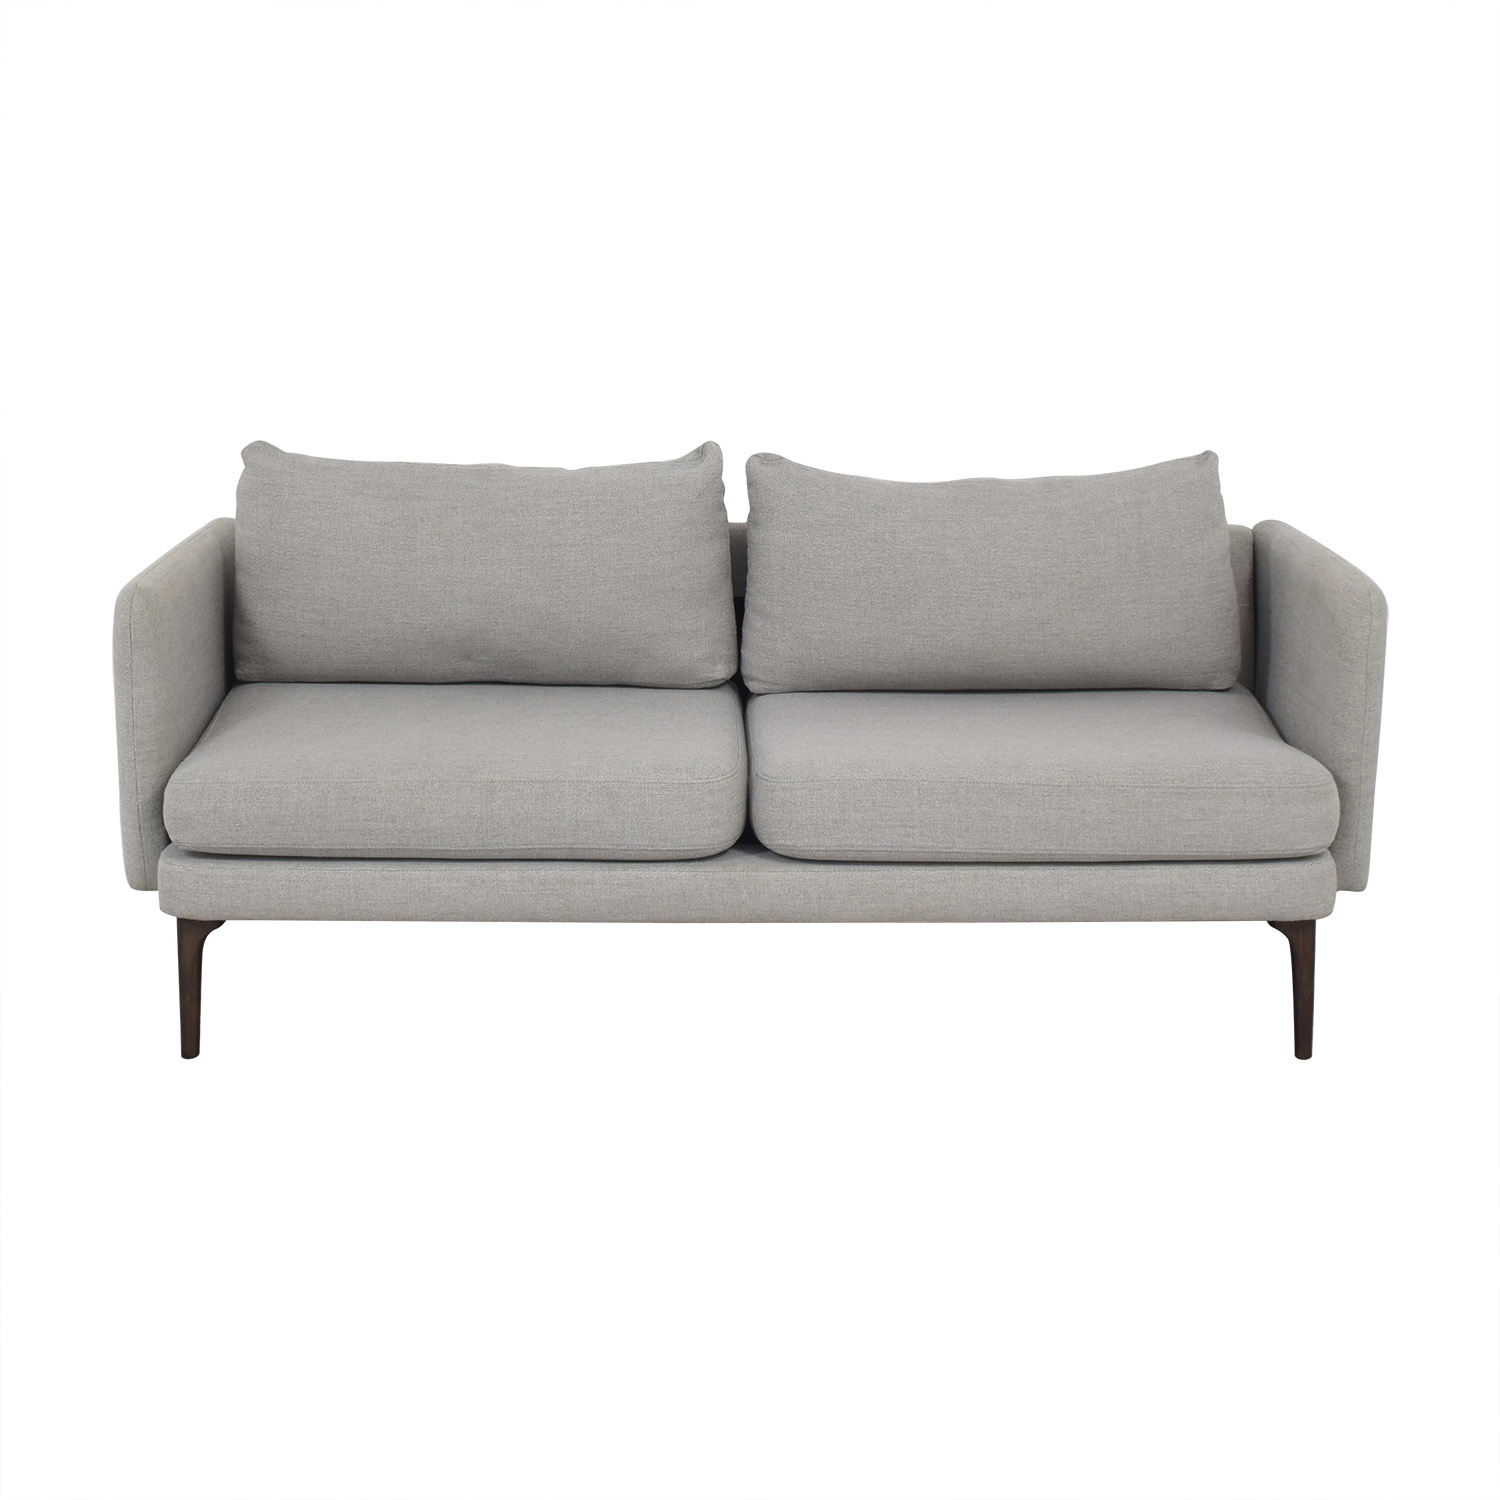 shop West Elm West Elm Auburn Sofa online